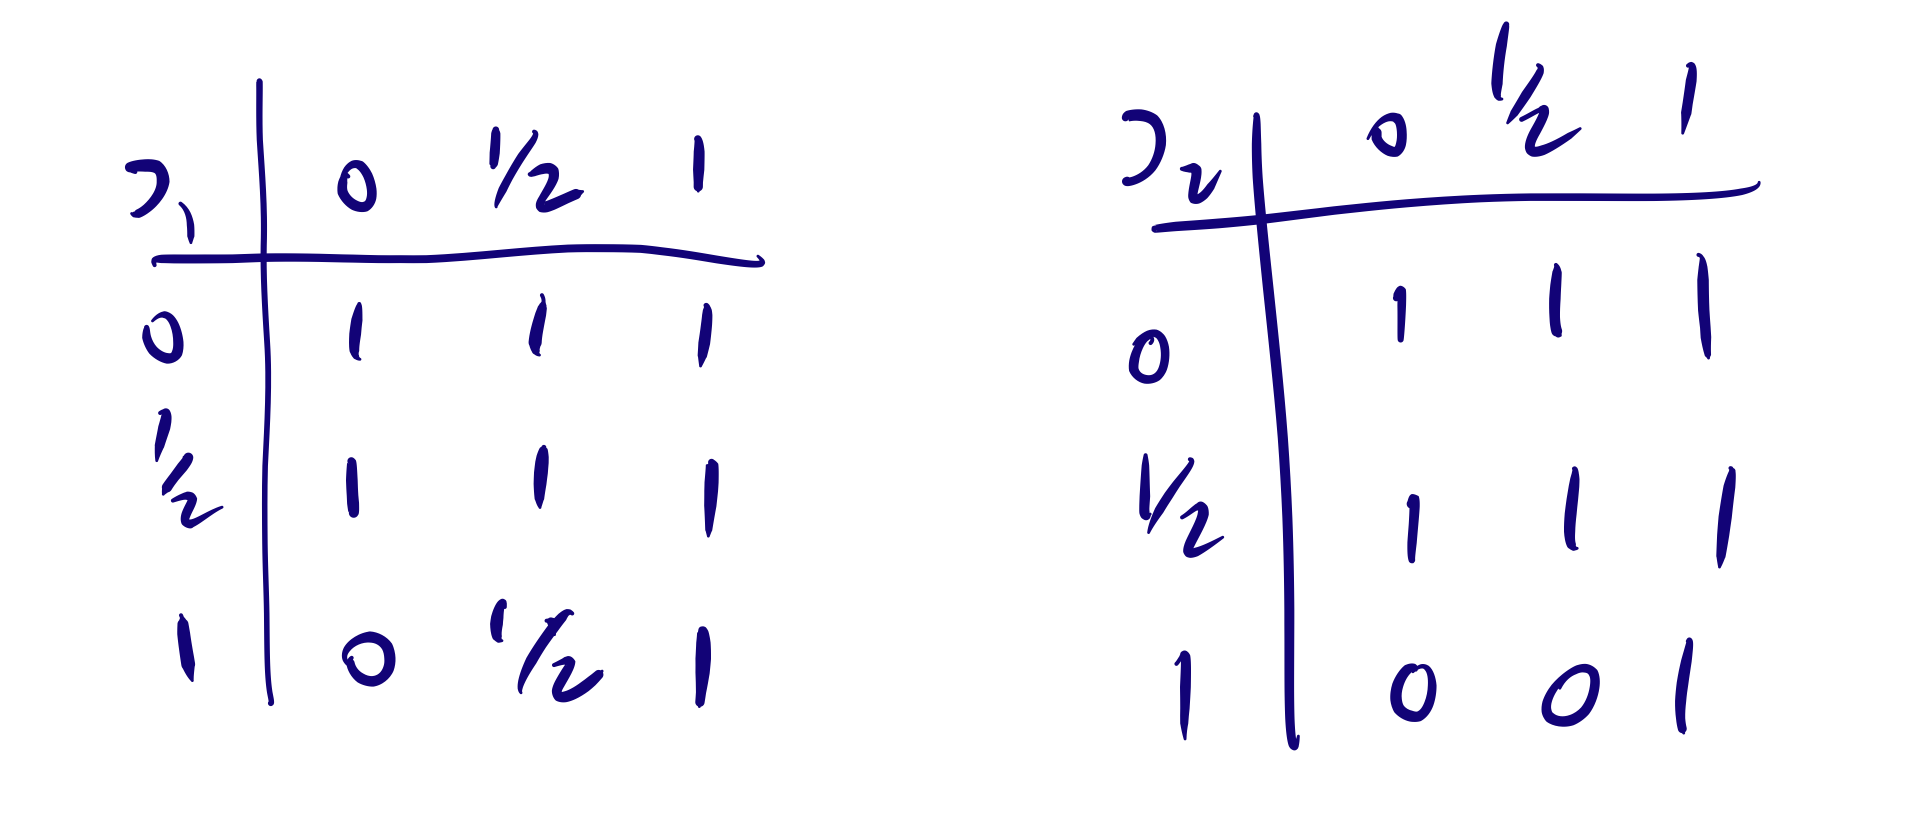 Two truth tables for conditionals